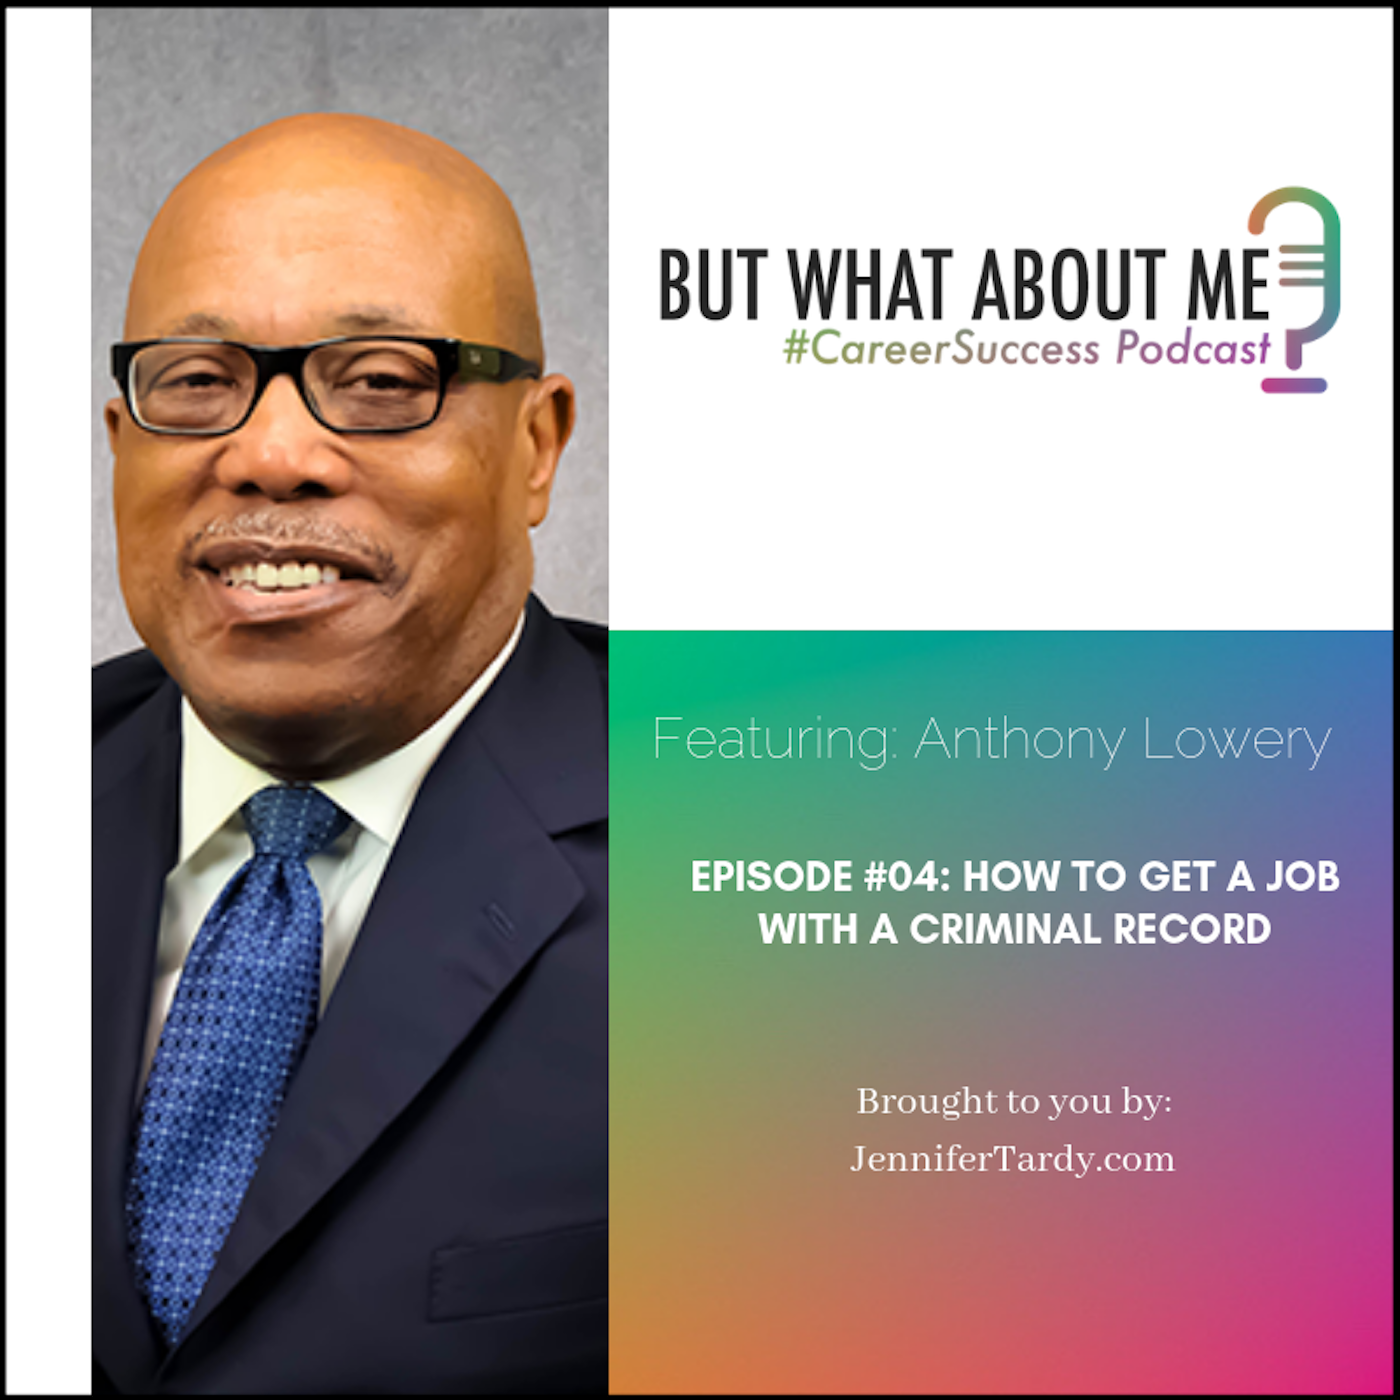 Episode 04: How to Get A Job With A Criminal Record